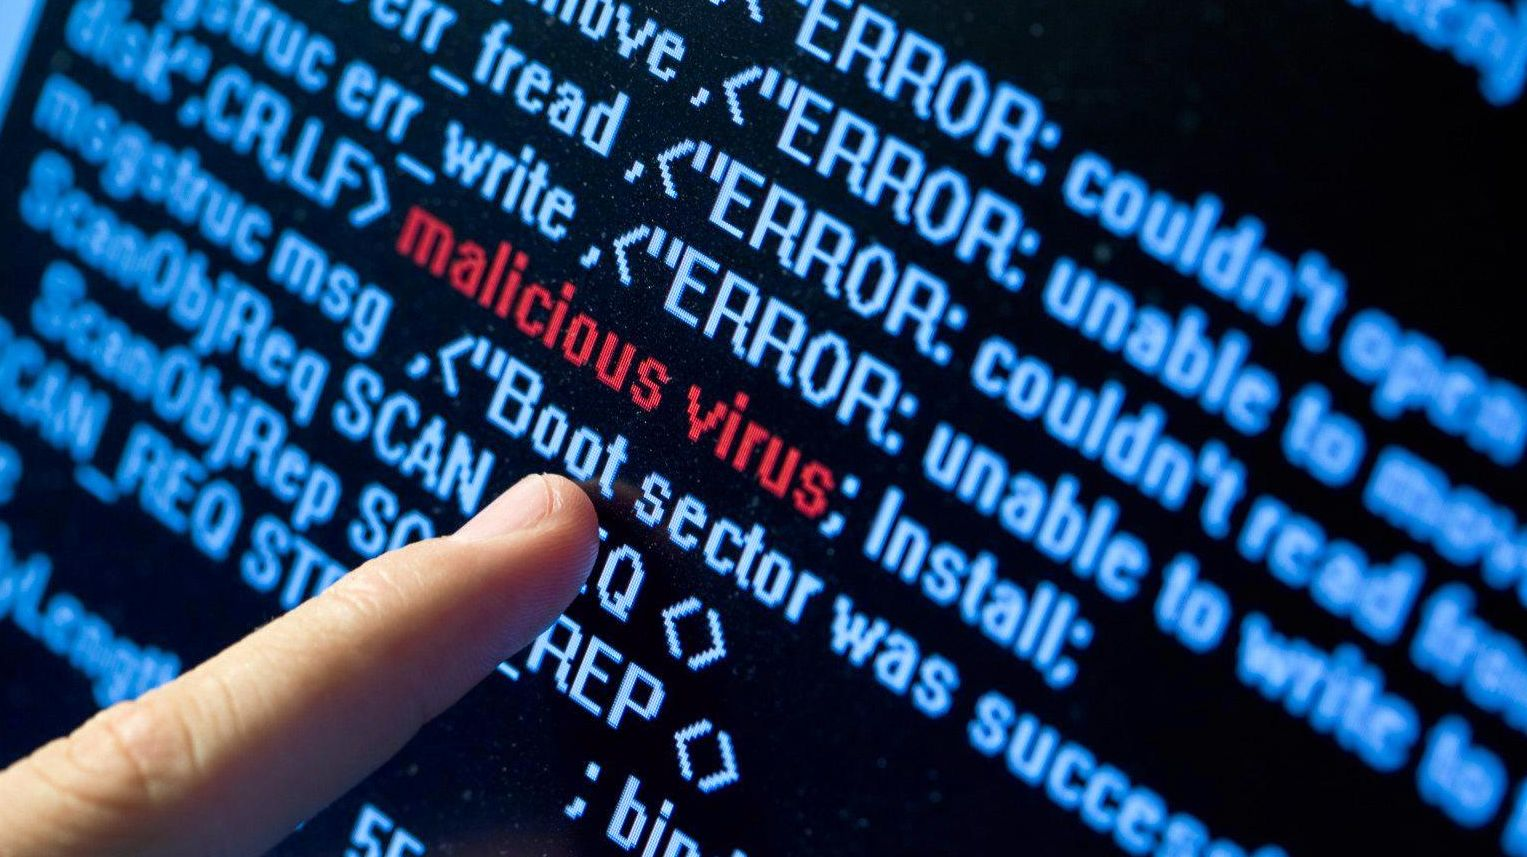 Cyber hackers are threatening businesses across the country and regional towns are not prepared.